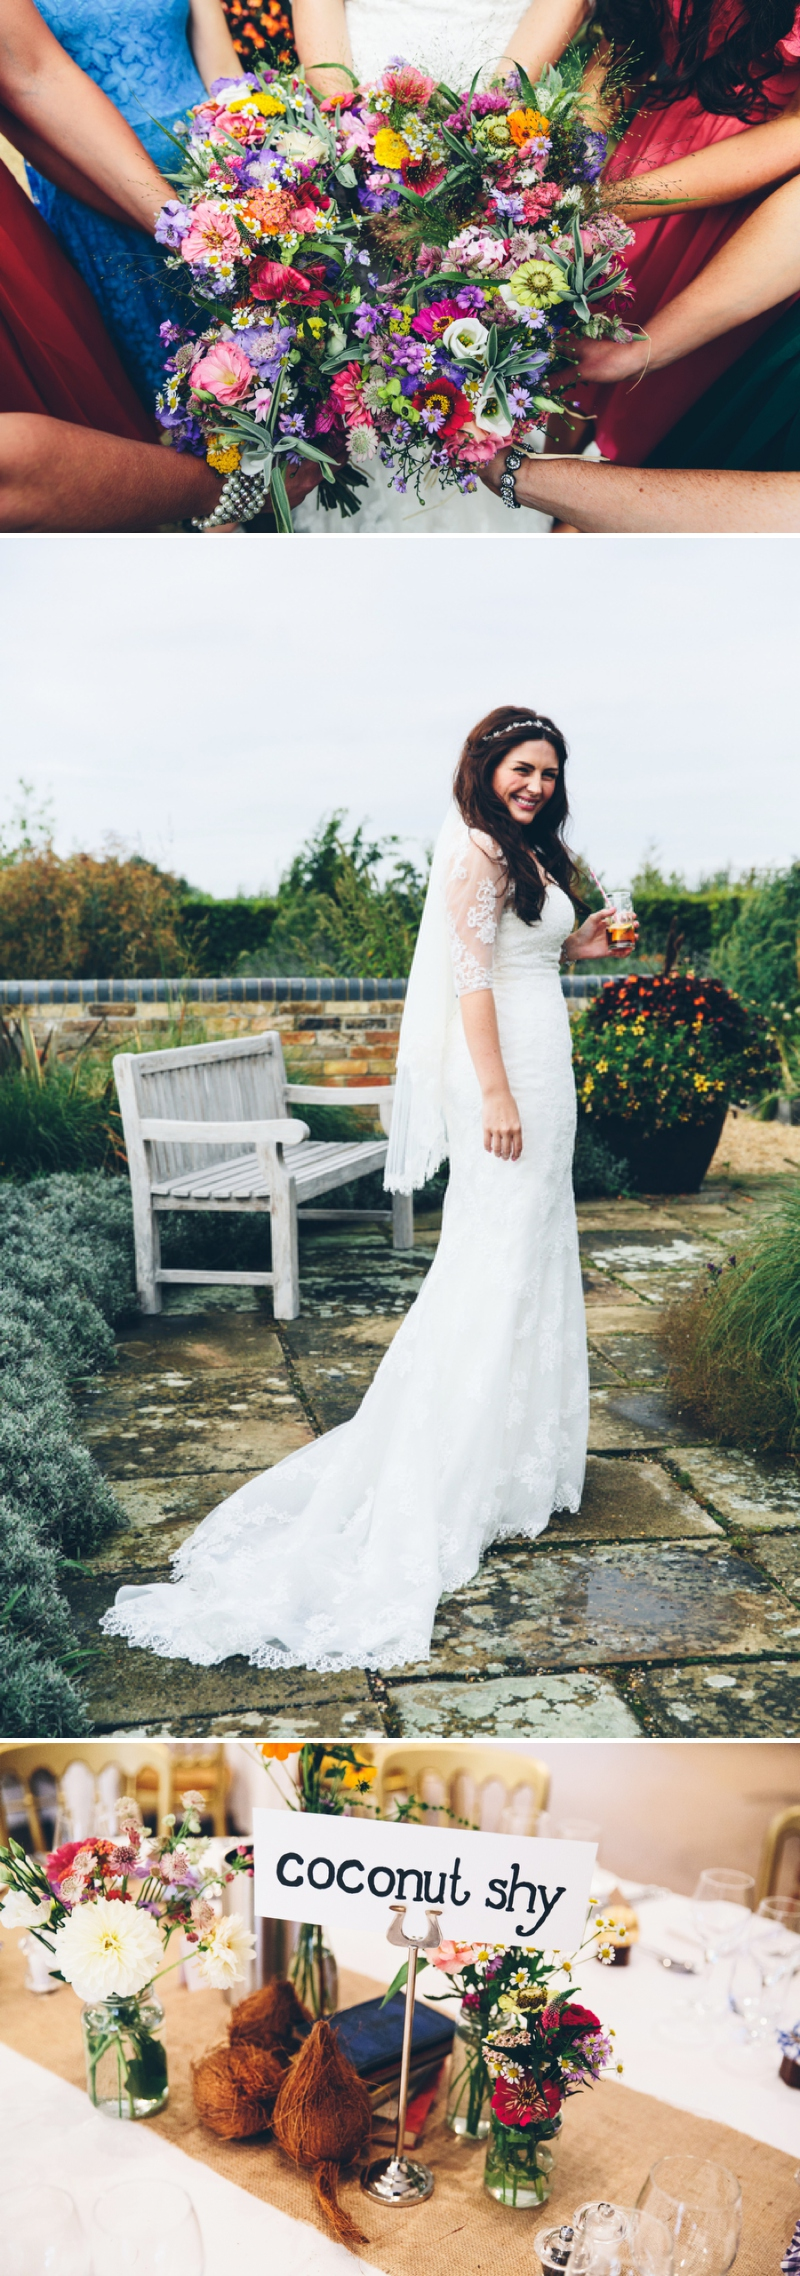 Festival fete style wedding at South farm with Urda gown by Pronovias by Mister Phill Photography_0551